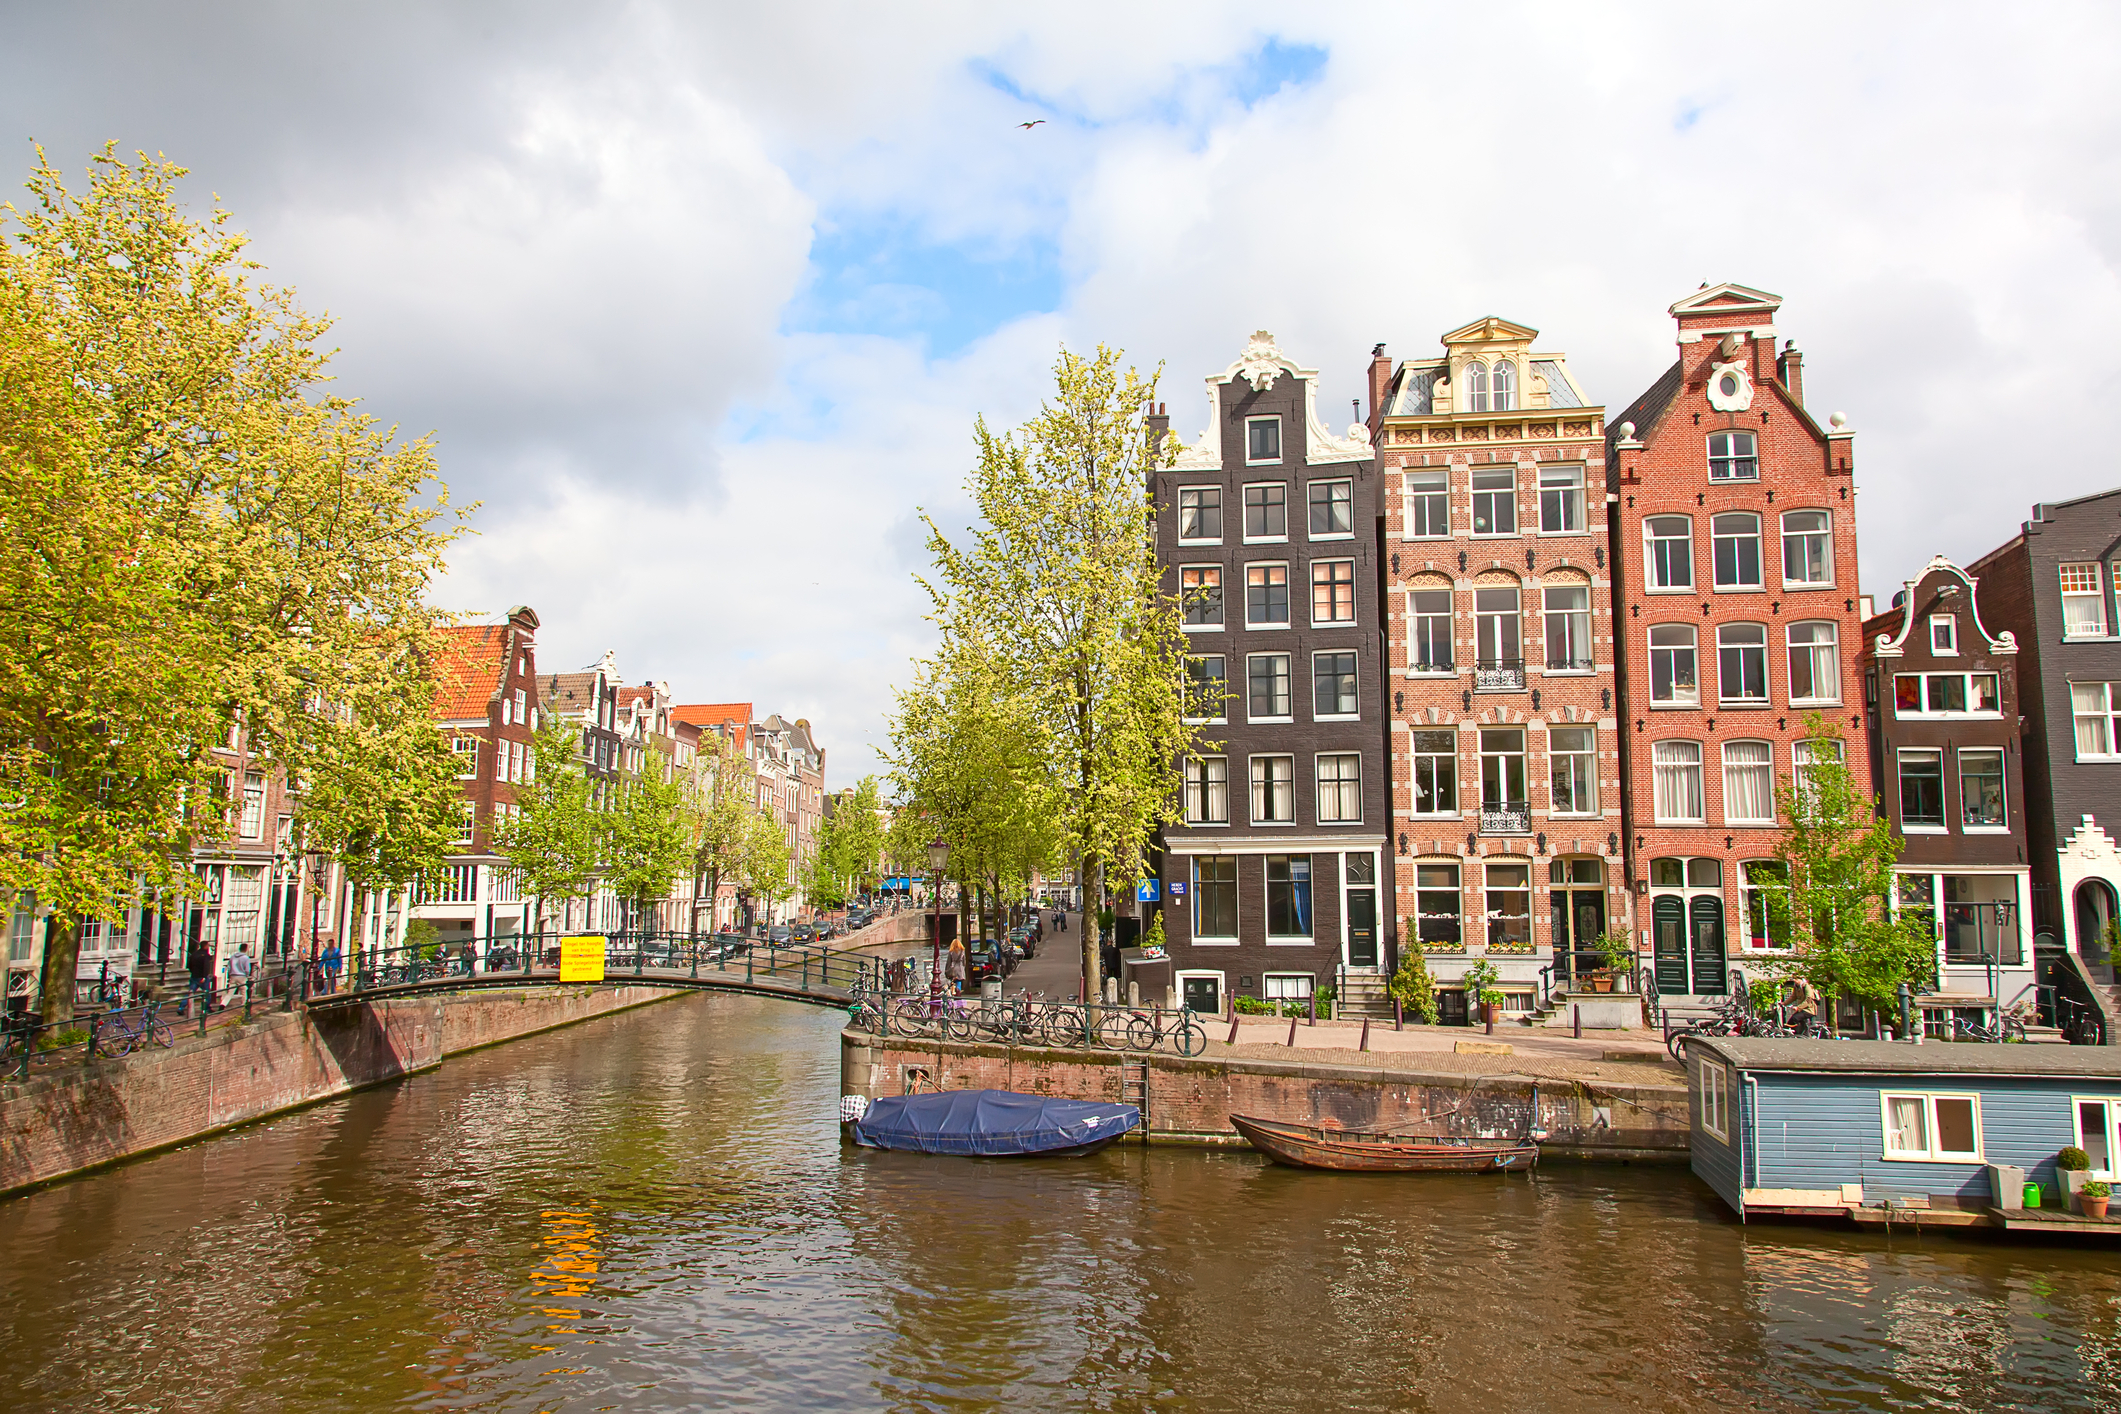 Amsterdam-Canal-River-architecture.jpeg?mtime=20140808143243#asset:26790